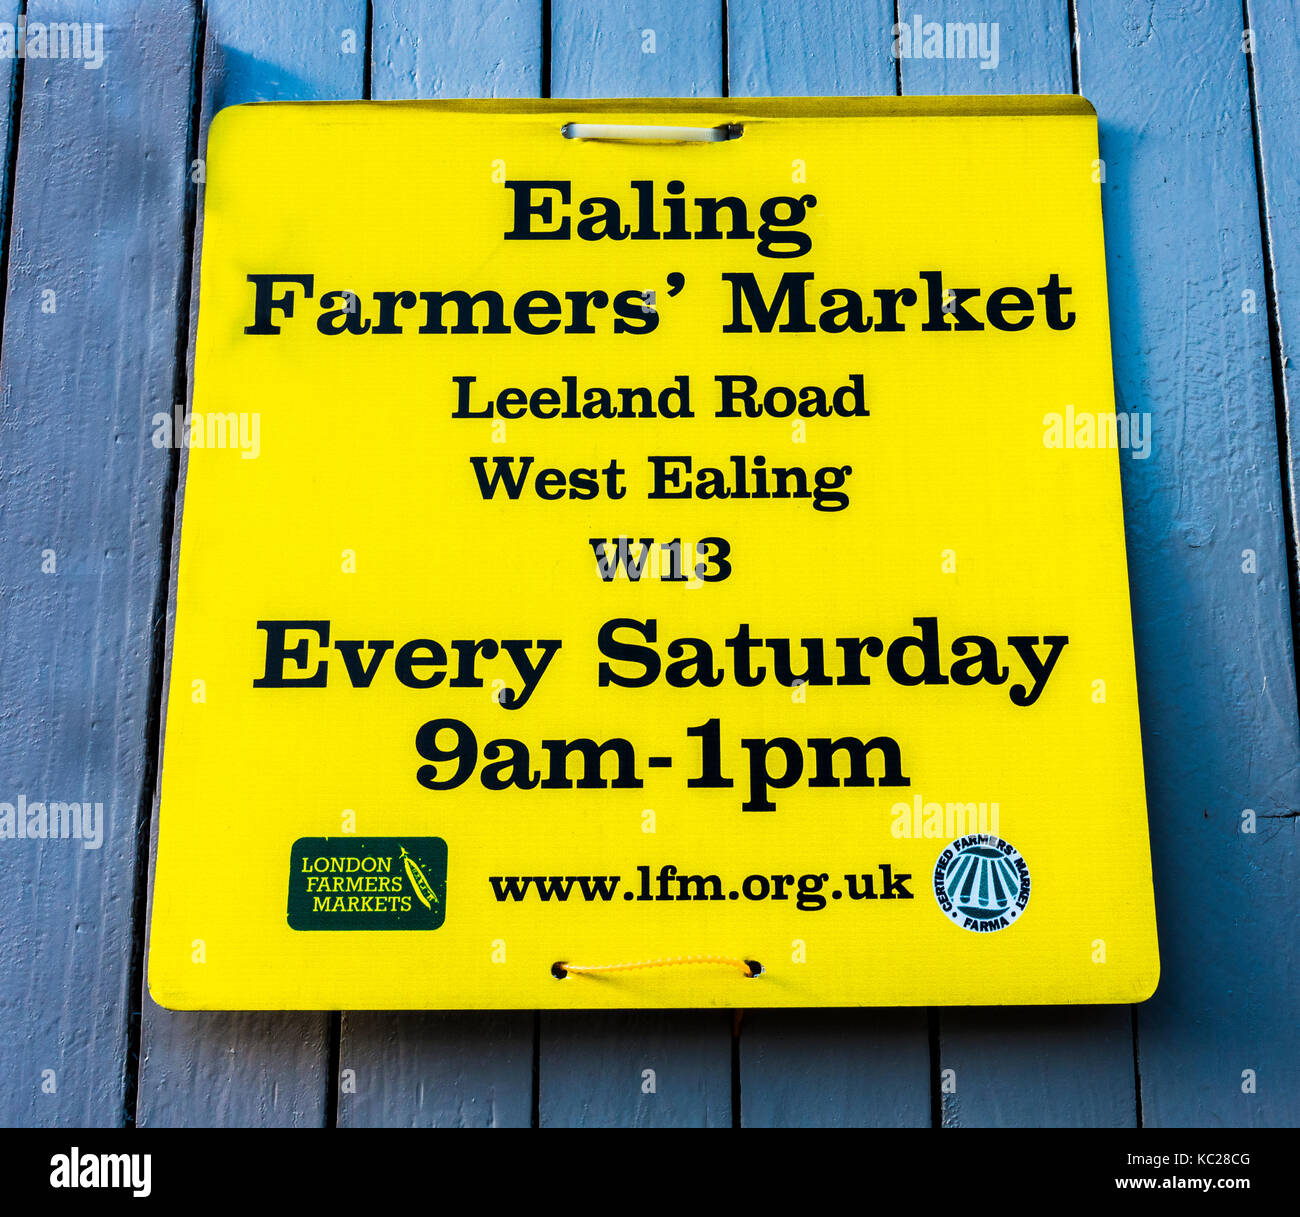 Ealing Farmers' Market in London W13, prominent yellow sign attached to a wooden fence in South Ealing, London - Stock Image